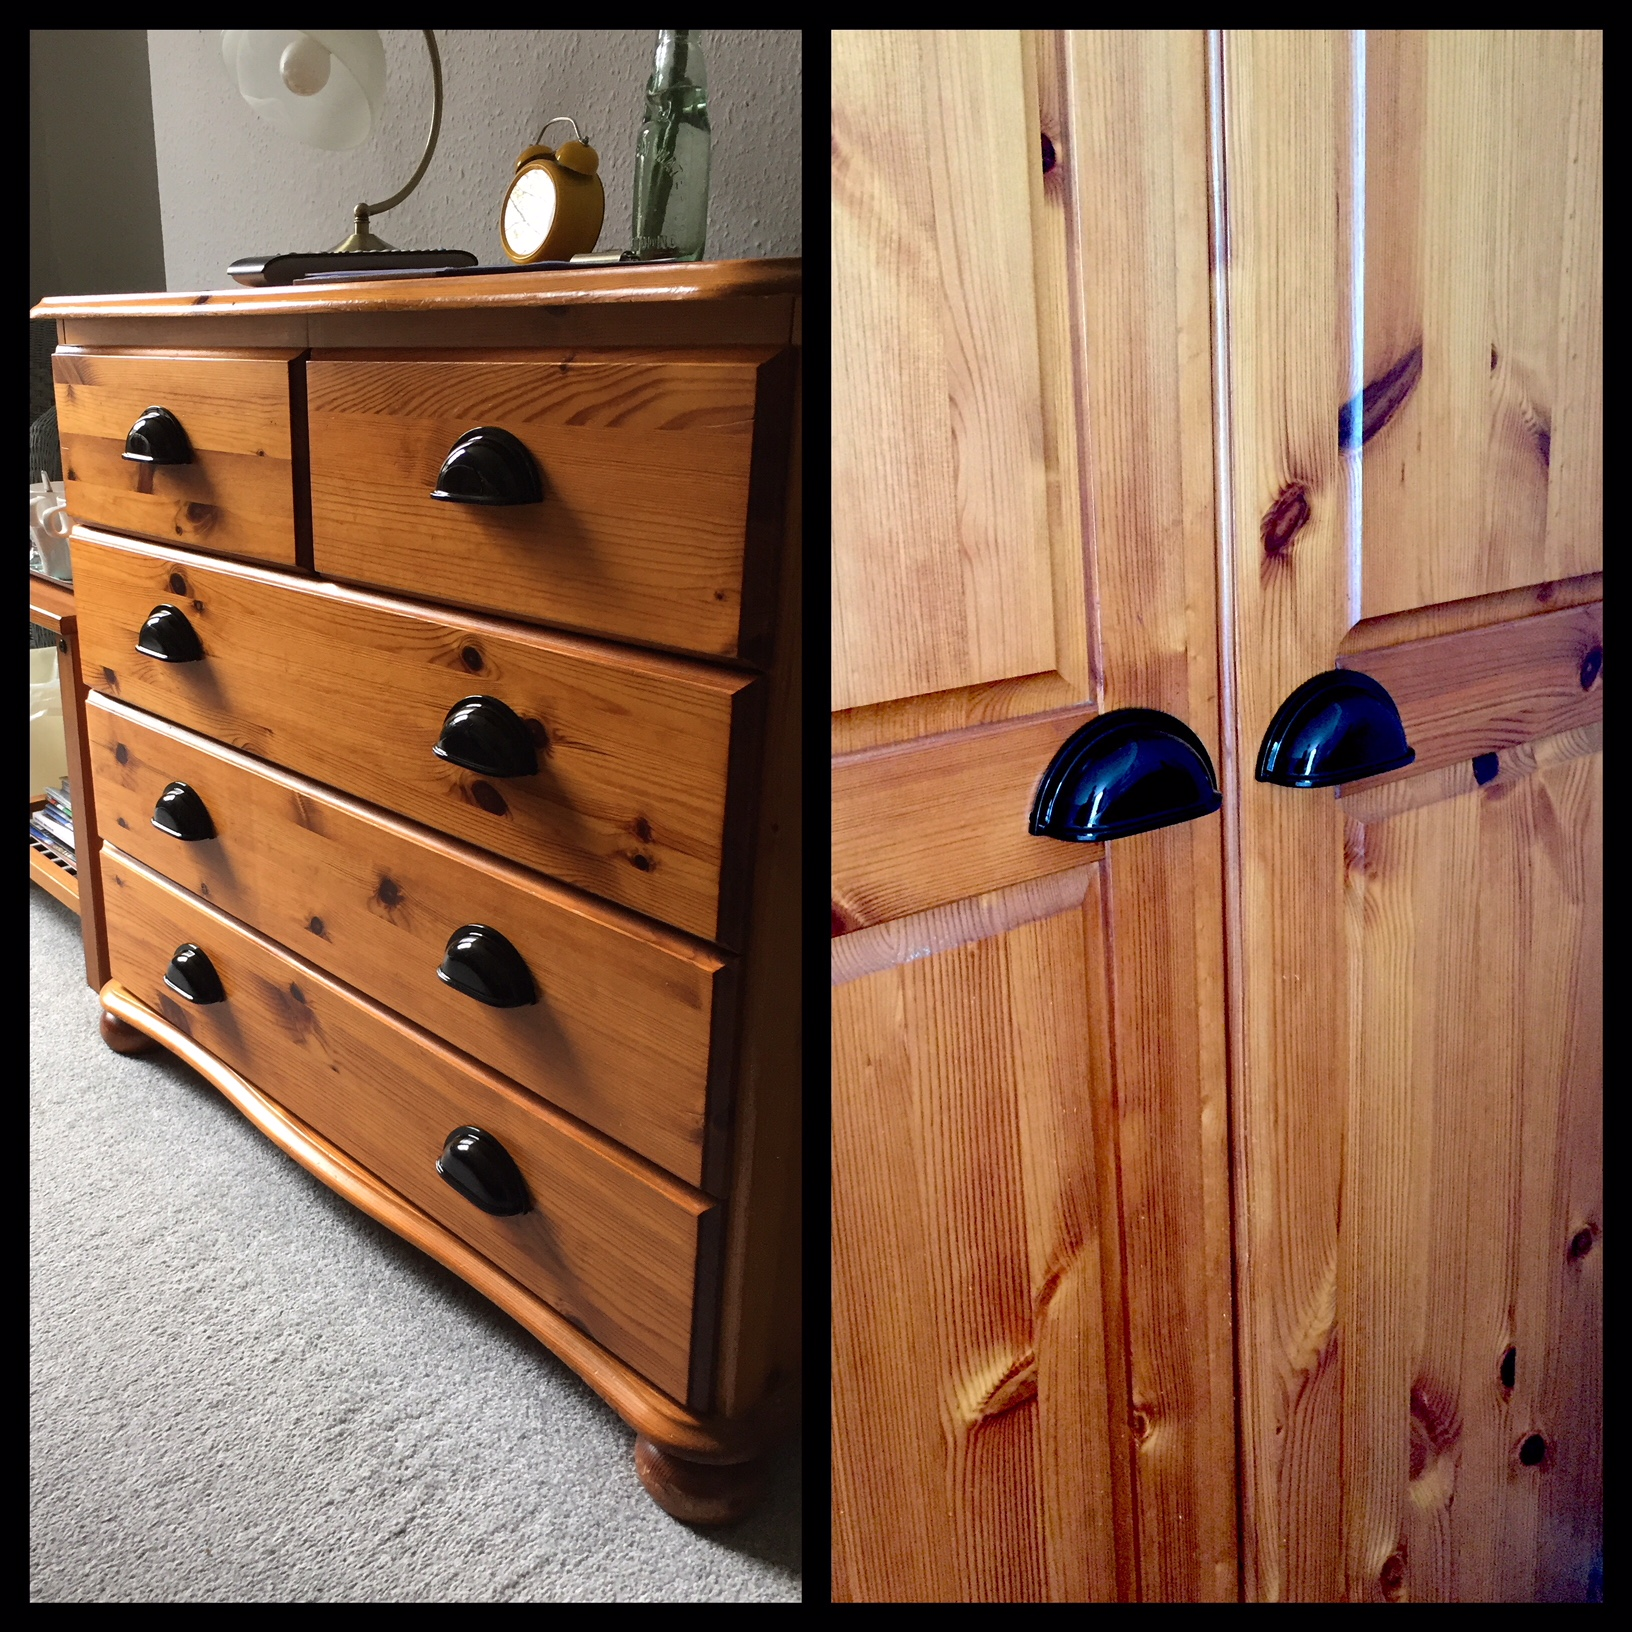 - ... and given the bedroom furniture a little facelift with the replacement of all the wooden knobs.